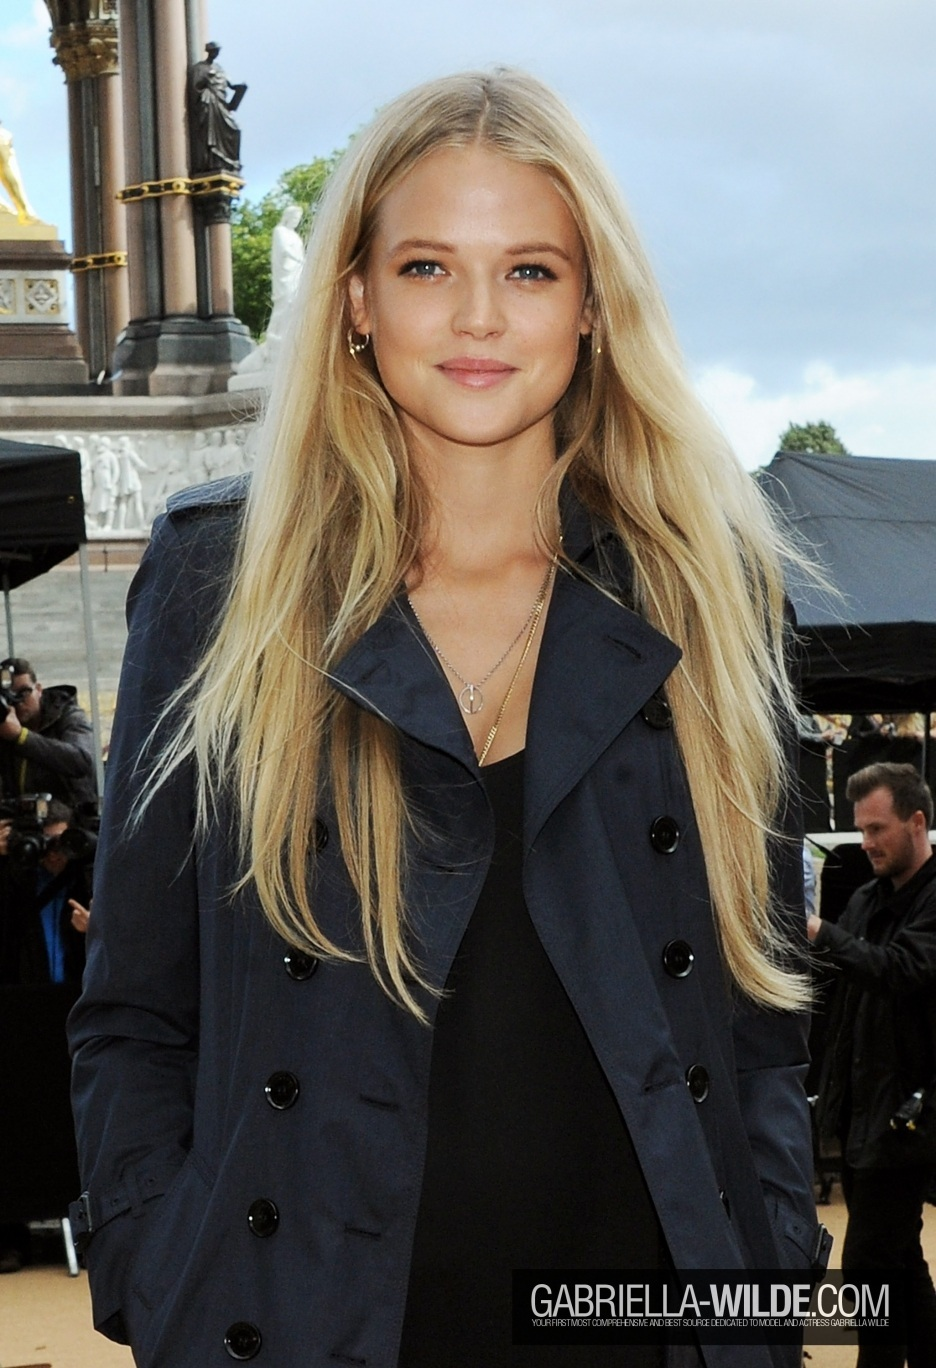 full-gabriella-wilde-deafcedcf86443c6b61d5abf00add6ac-large-1544524.jpg